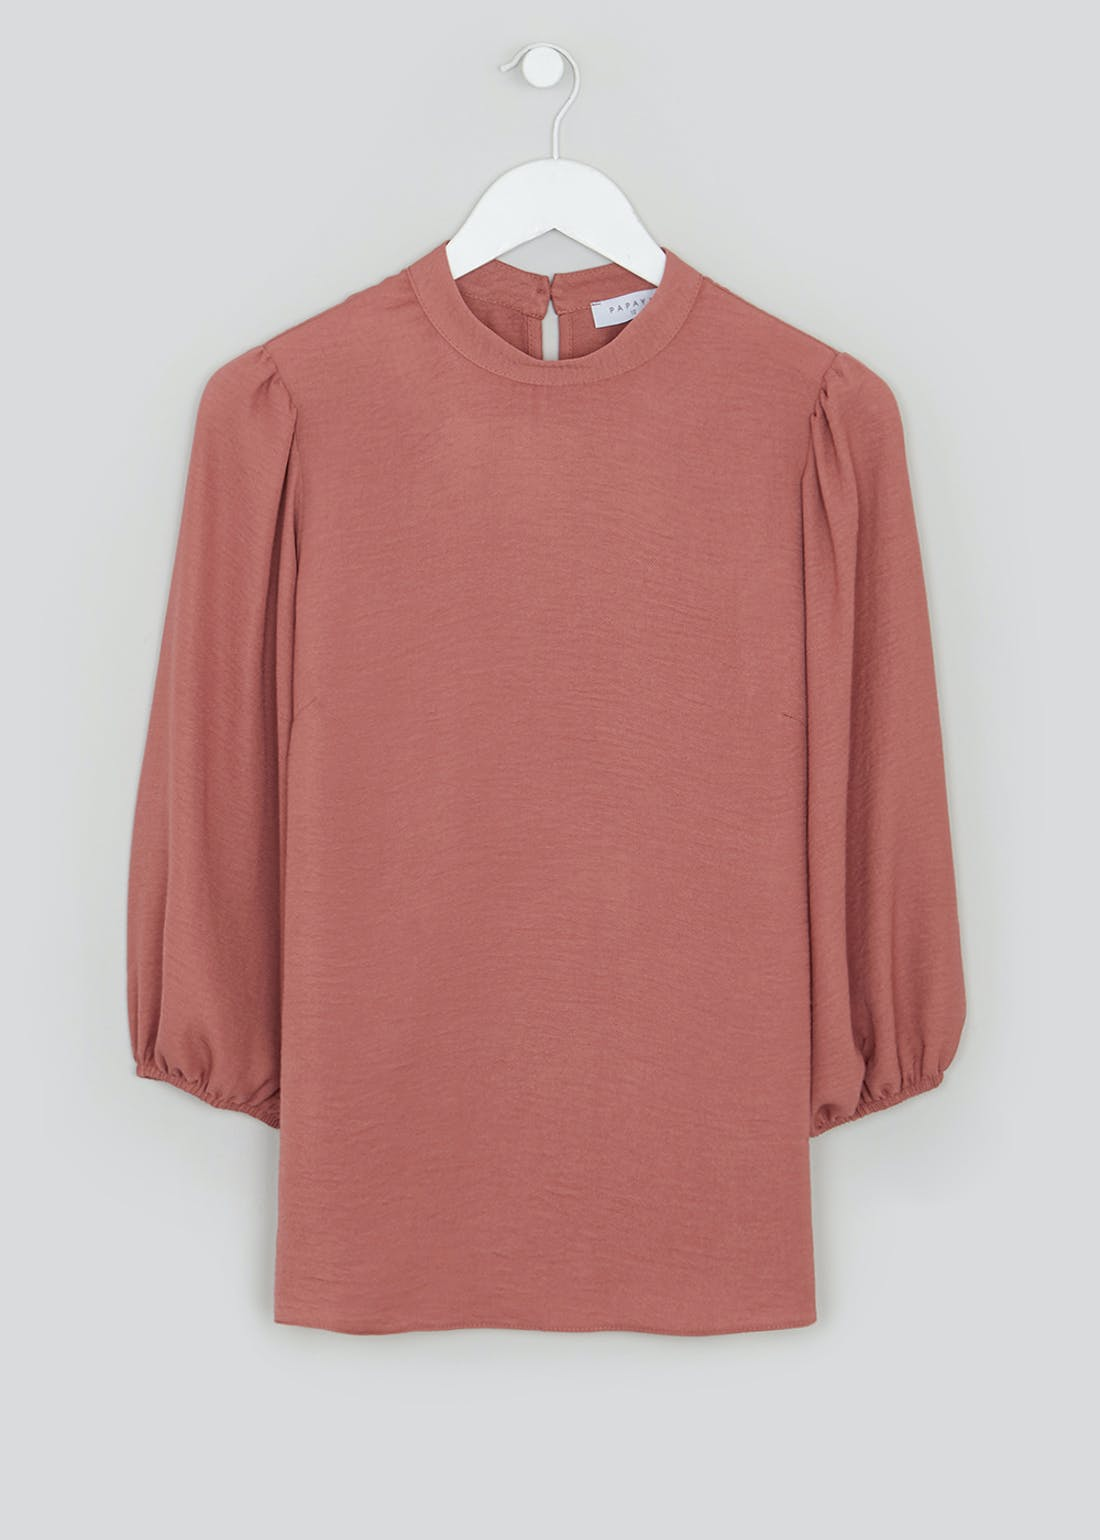 Pink Puff Sleeve High Neck Blouse